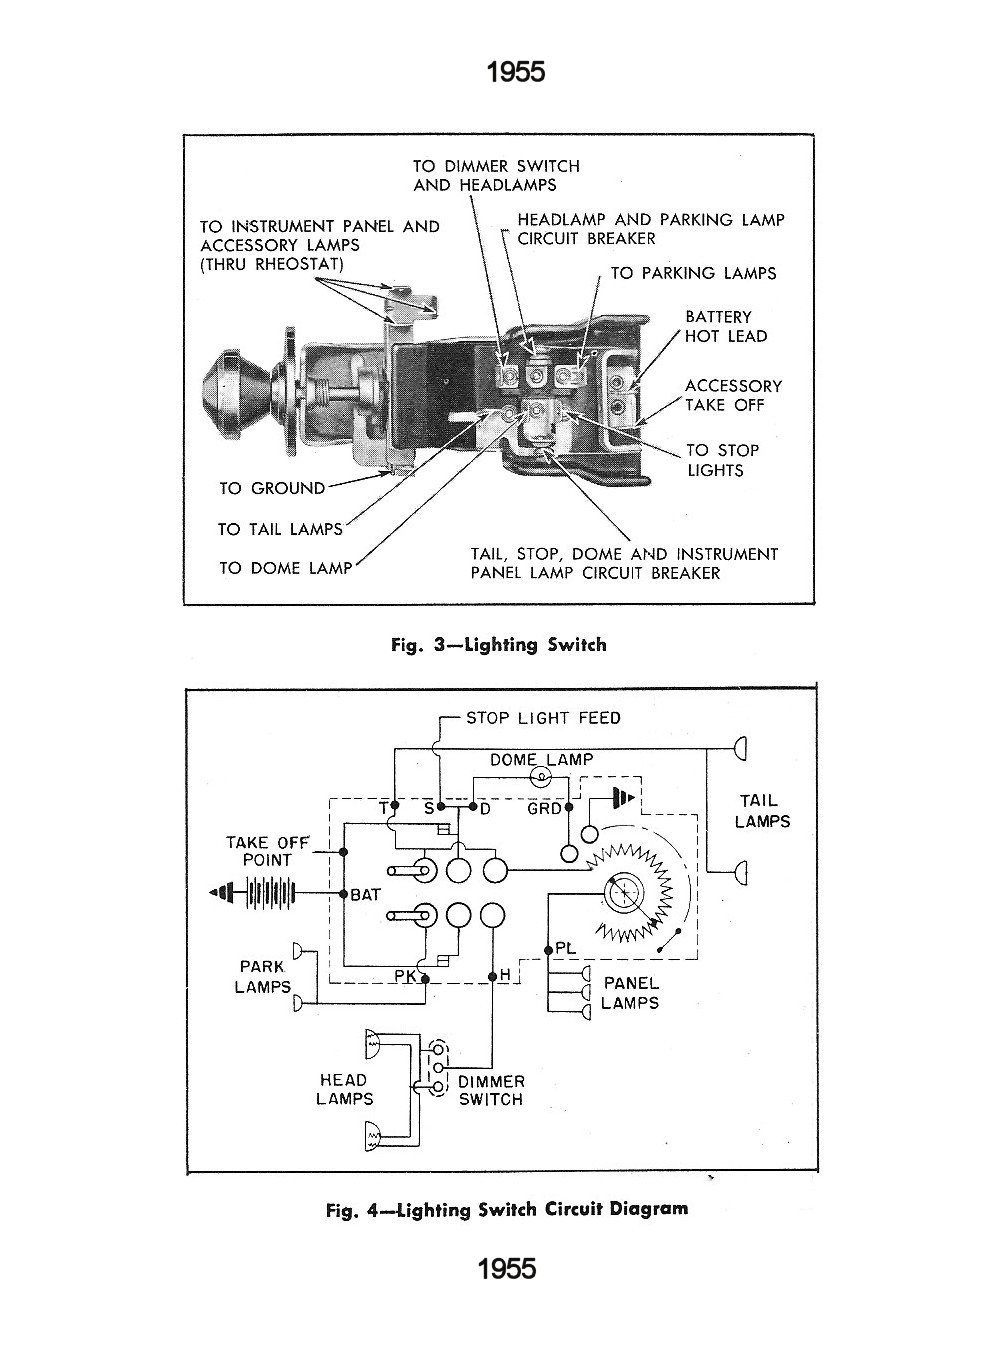 1947 Dodge Headlight Switch Wiring Diagram Diy Enthusiasts 1968 Mustang Chevy Diagrams Rh Oldcarmanualproject Com 85 57